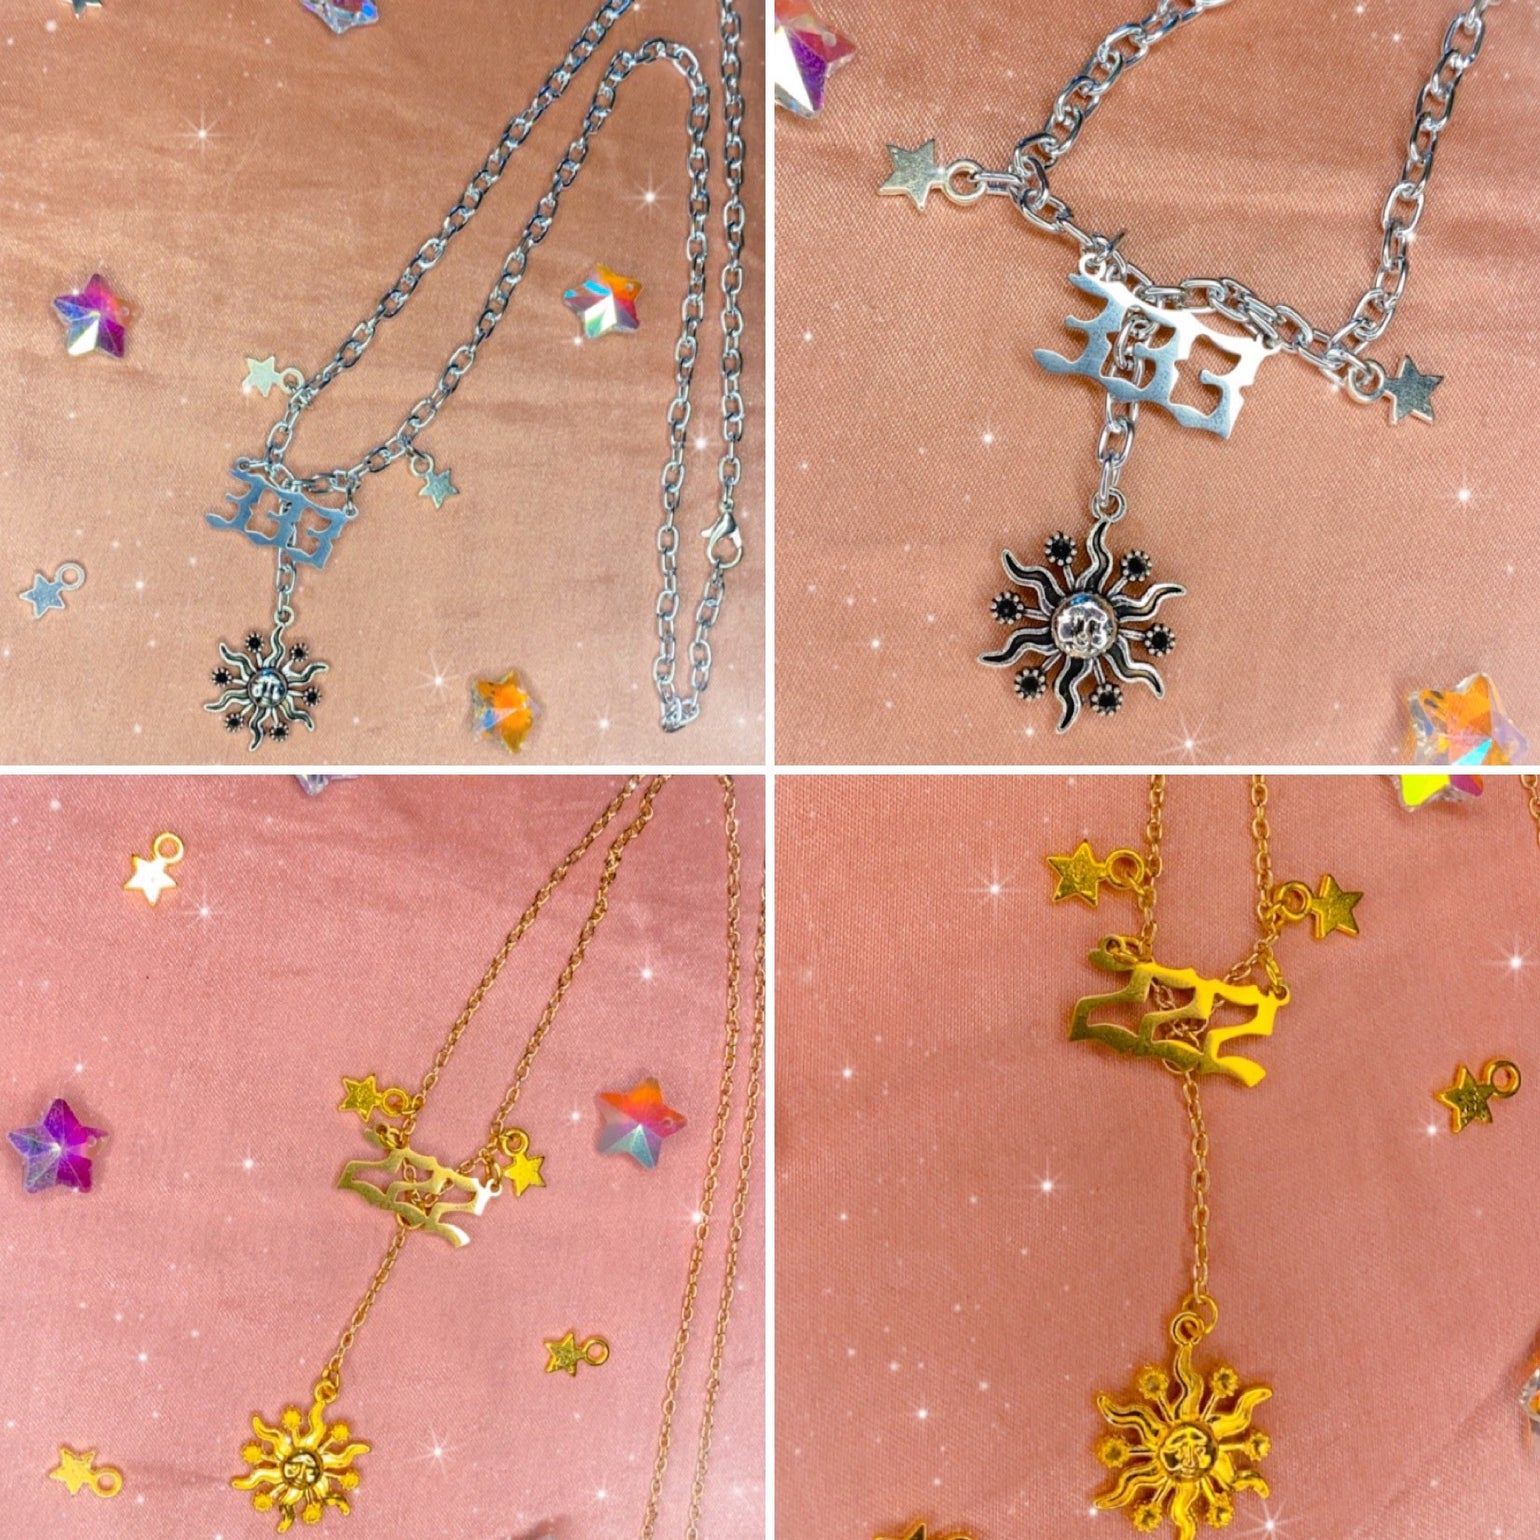 Image of angel number necklaces (silver and gold)